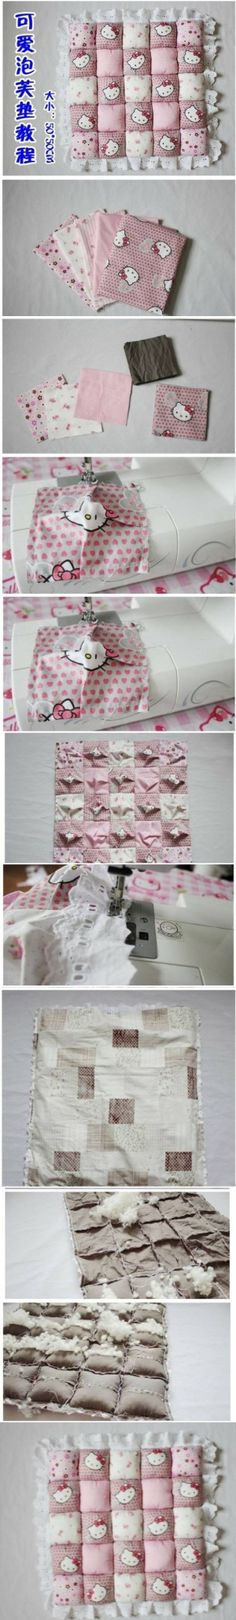 DIY Cute Little Puff Cushions DIY Cute Little Puff Cushions by diyforever